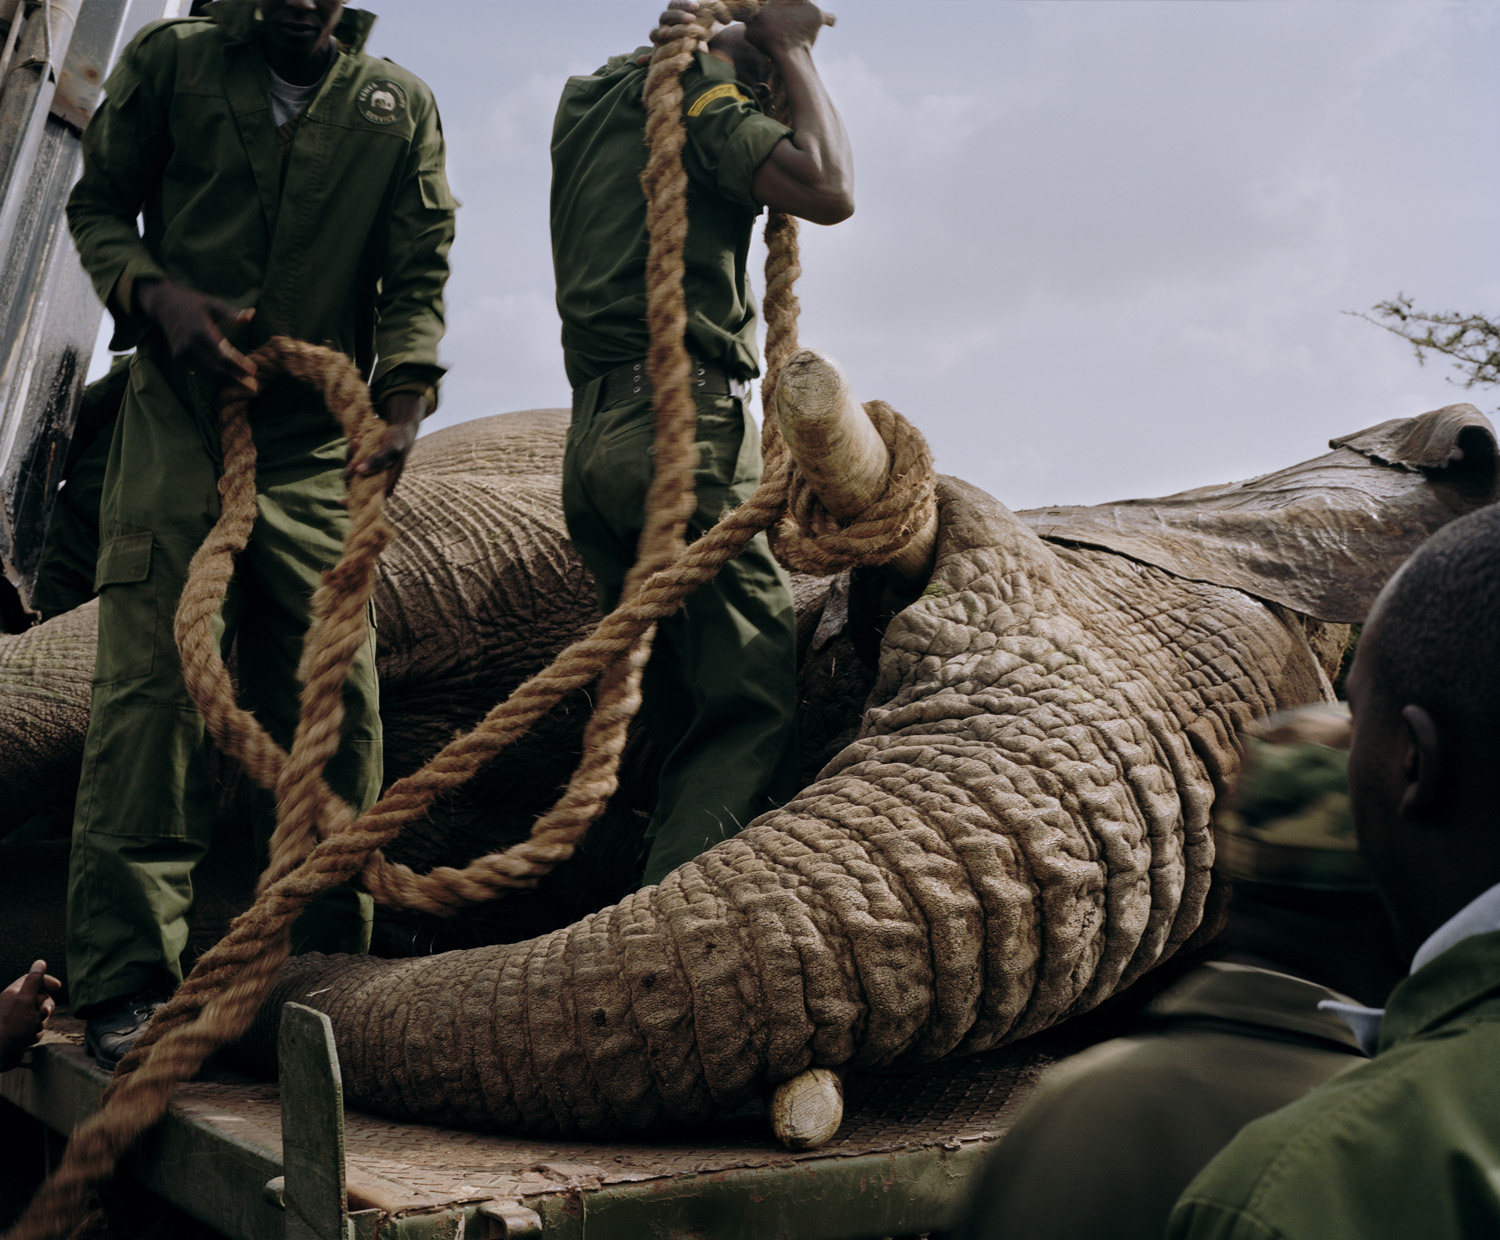 A tranquillized elephant is secured to a truck by rangers prior to be being transferred from Ol Pejeta Conservancy, northern Kenya, to Meru National Park. After repeatedly breaking down electric fences, it became necessary to move this elephant to an area far away from human settlement.